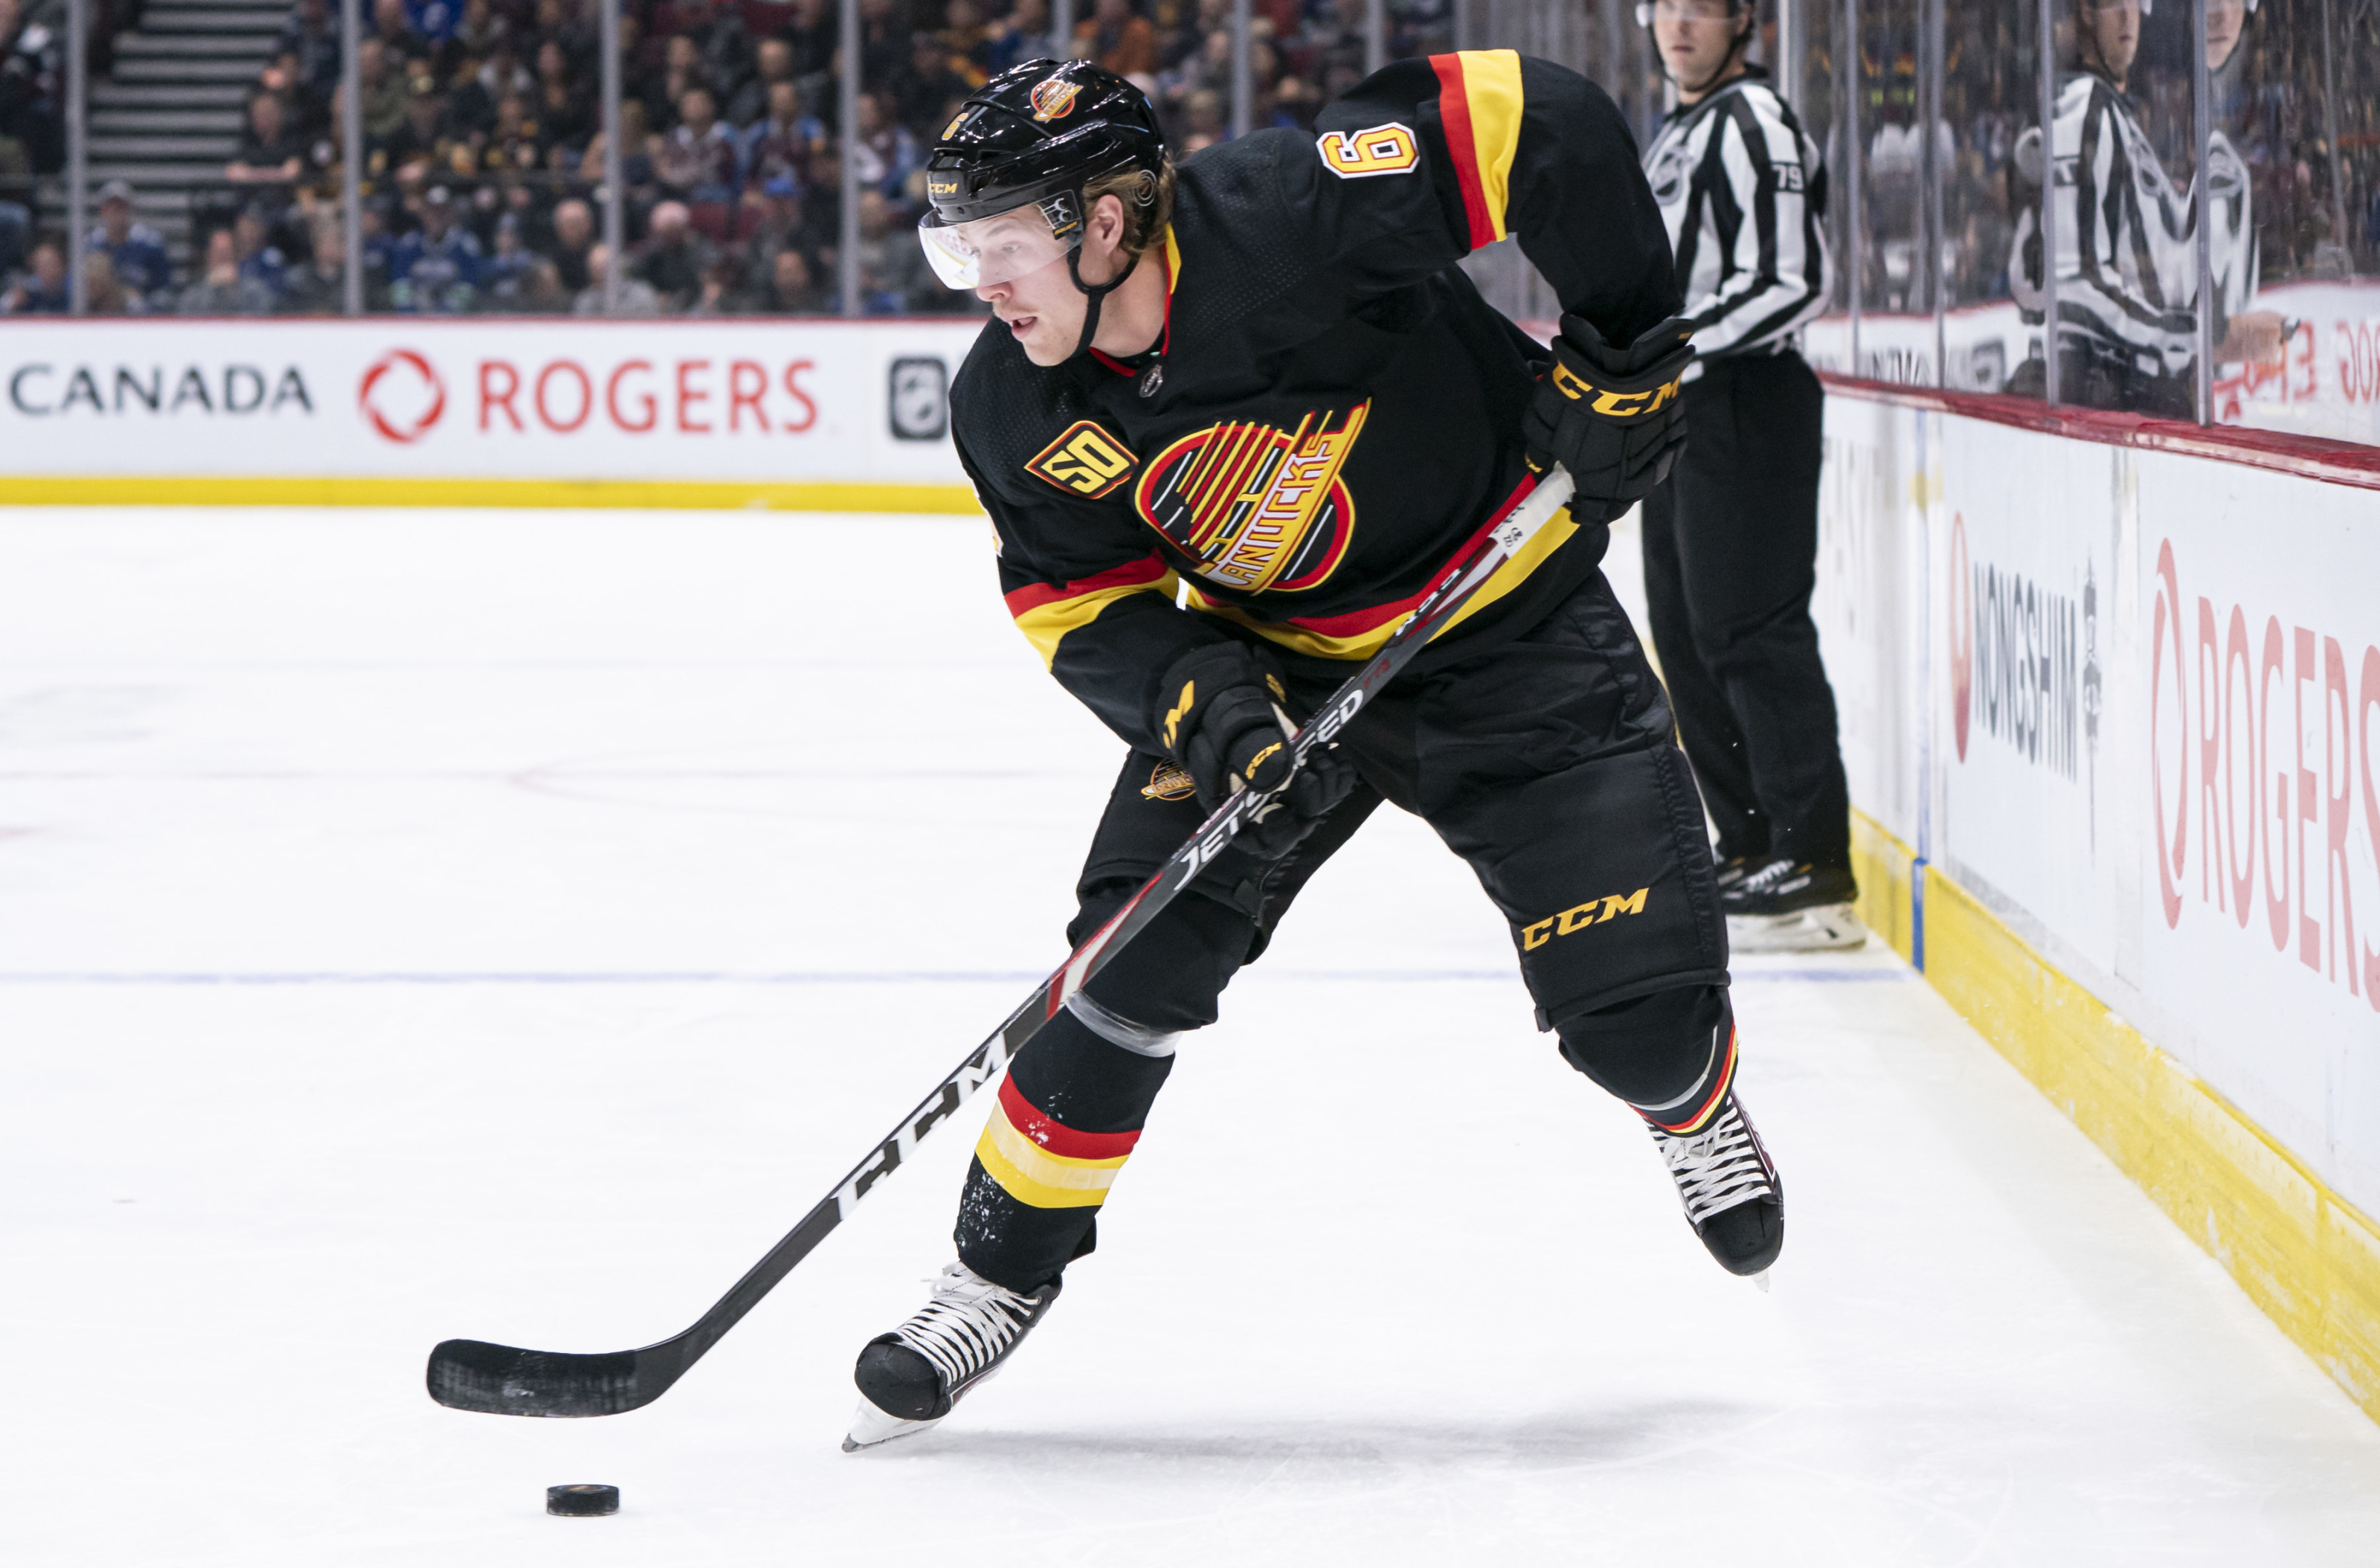 Will Brock Boeser's return push the Canucks into the playoffs?